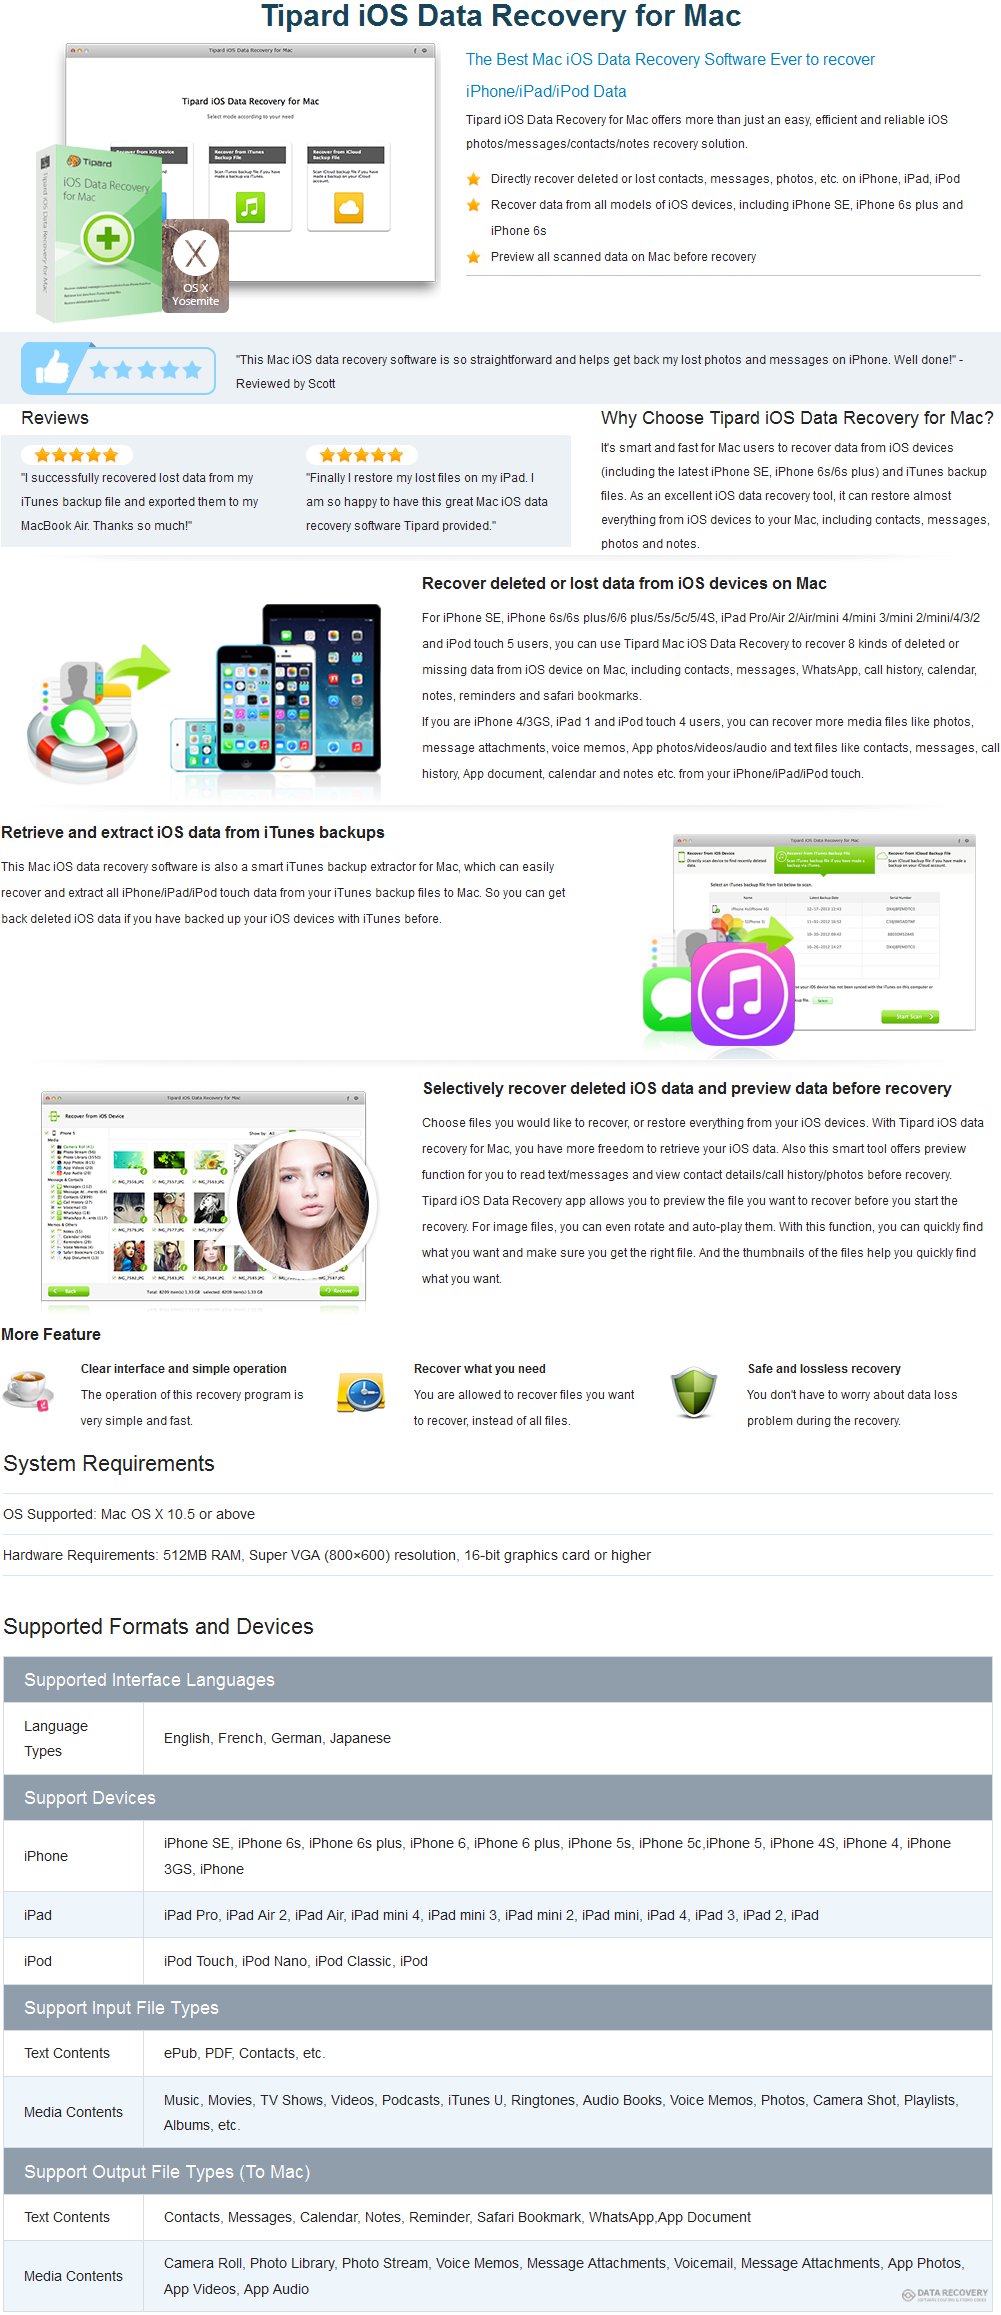 Tipard iOS Data Recovery for Mac Discount Coupon Code